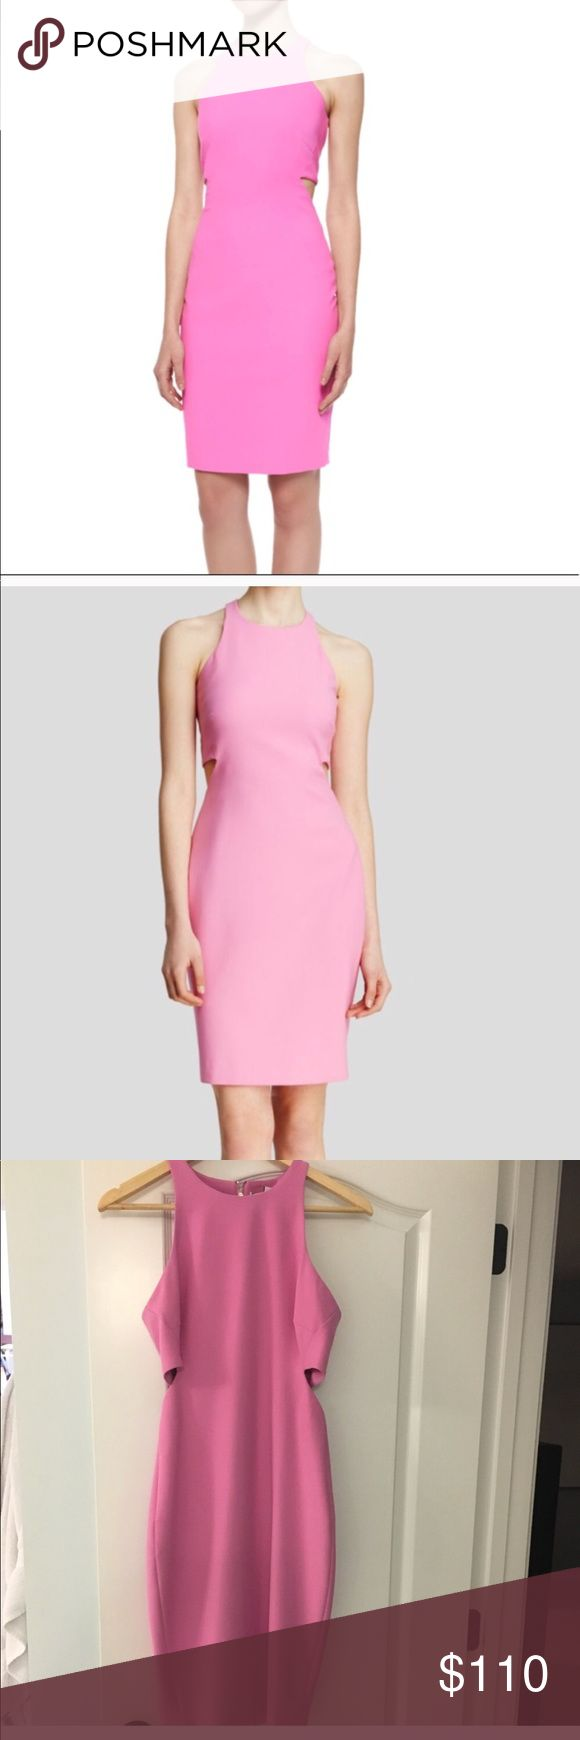 Elizabeth and James Lela cutout dress, pink, 6 Gorgeous piece!!! Bought it from another posher and it fit a little snug :( She was right—this dress is an absolute showstopper in perfect condition! Elizabeth and James Dresses